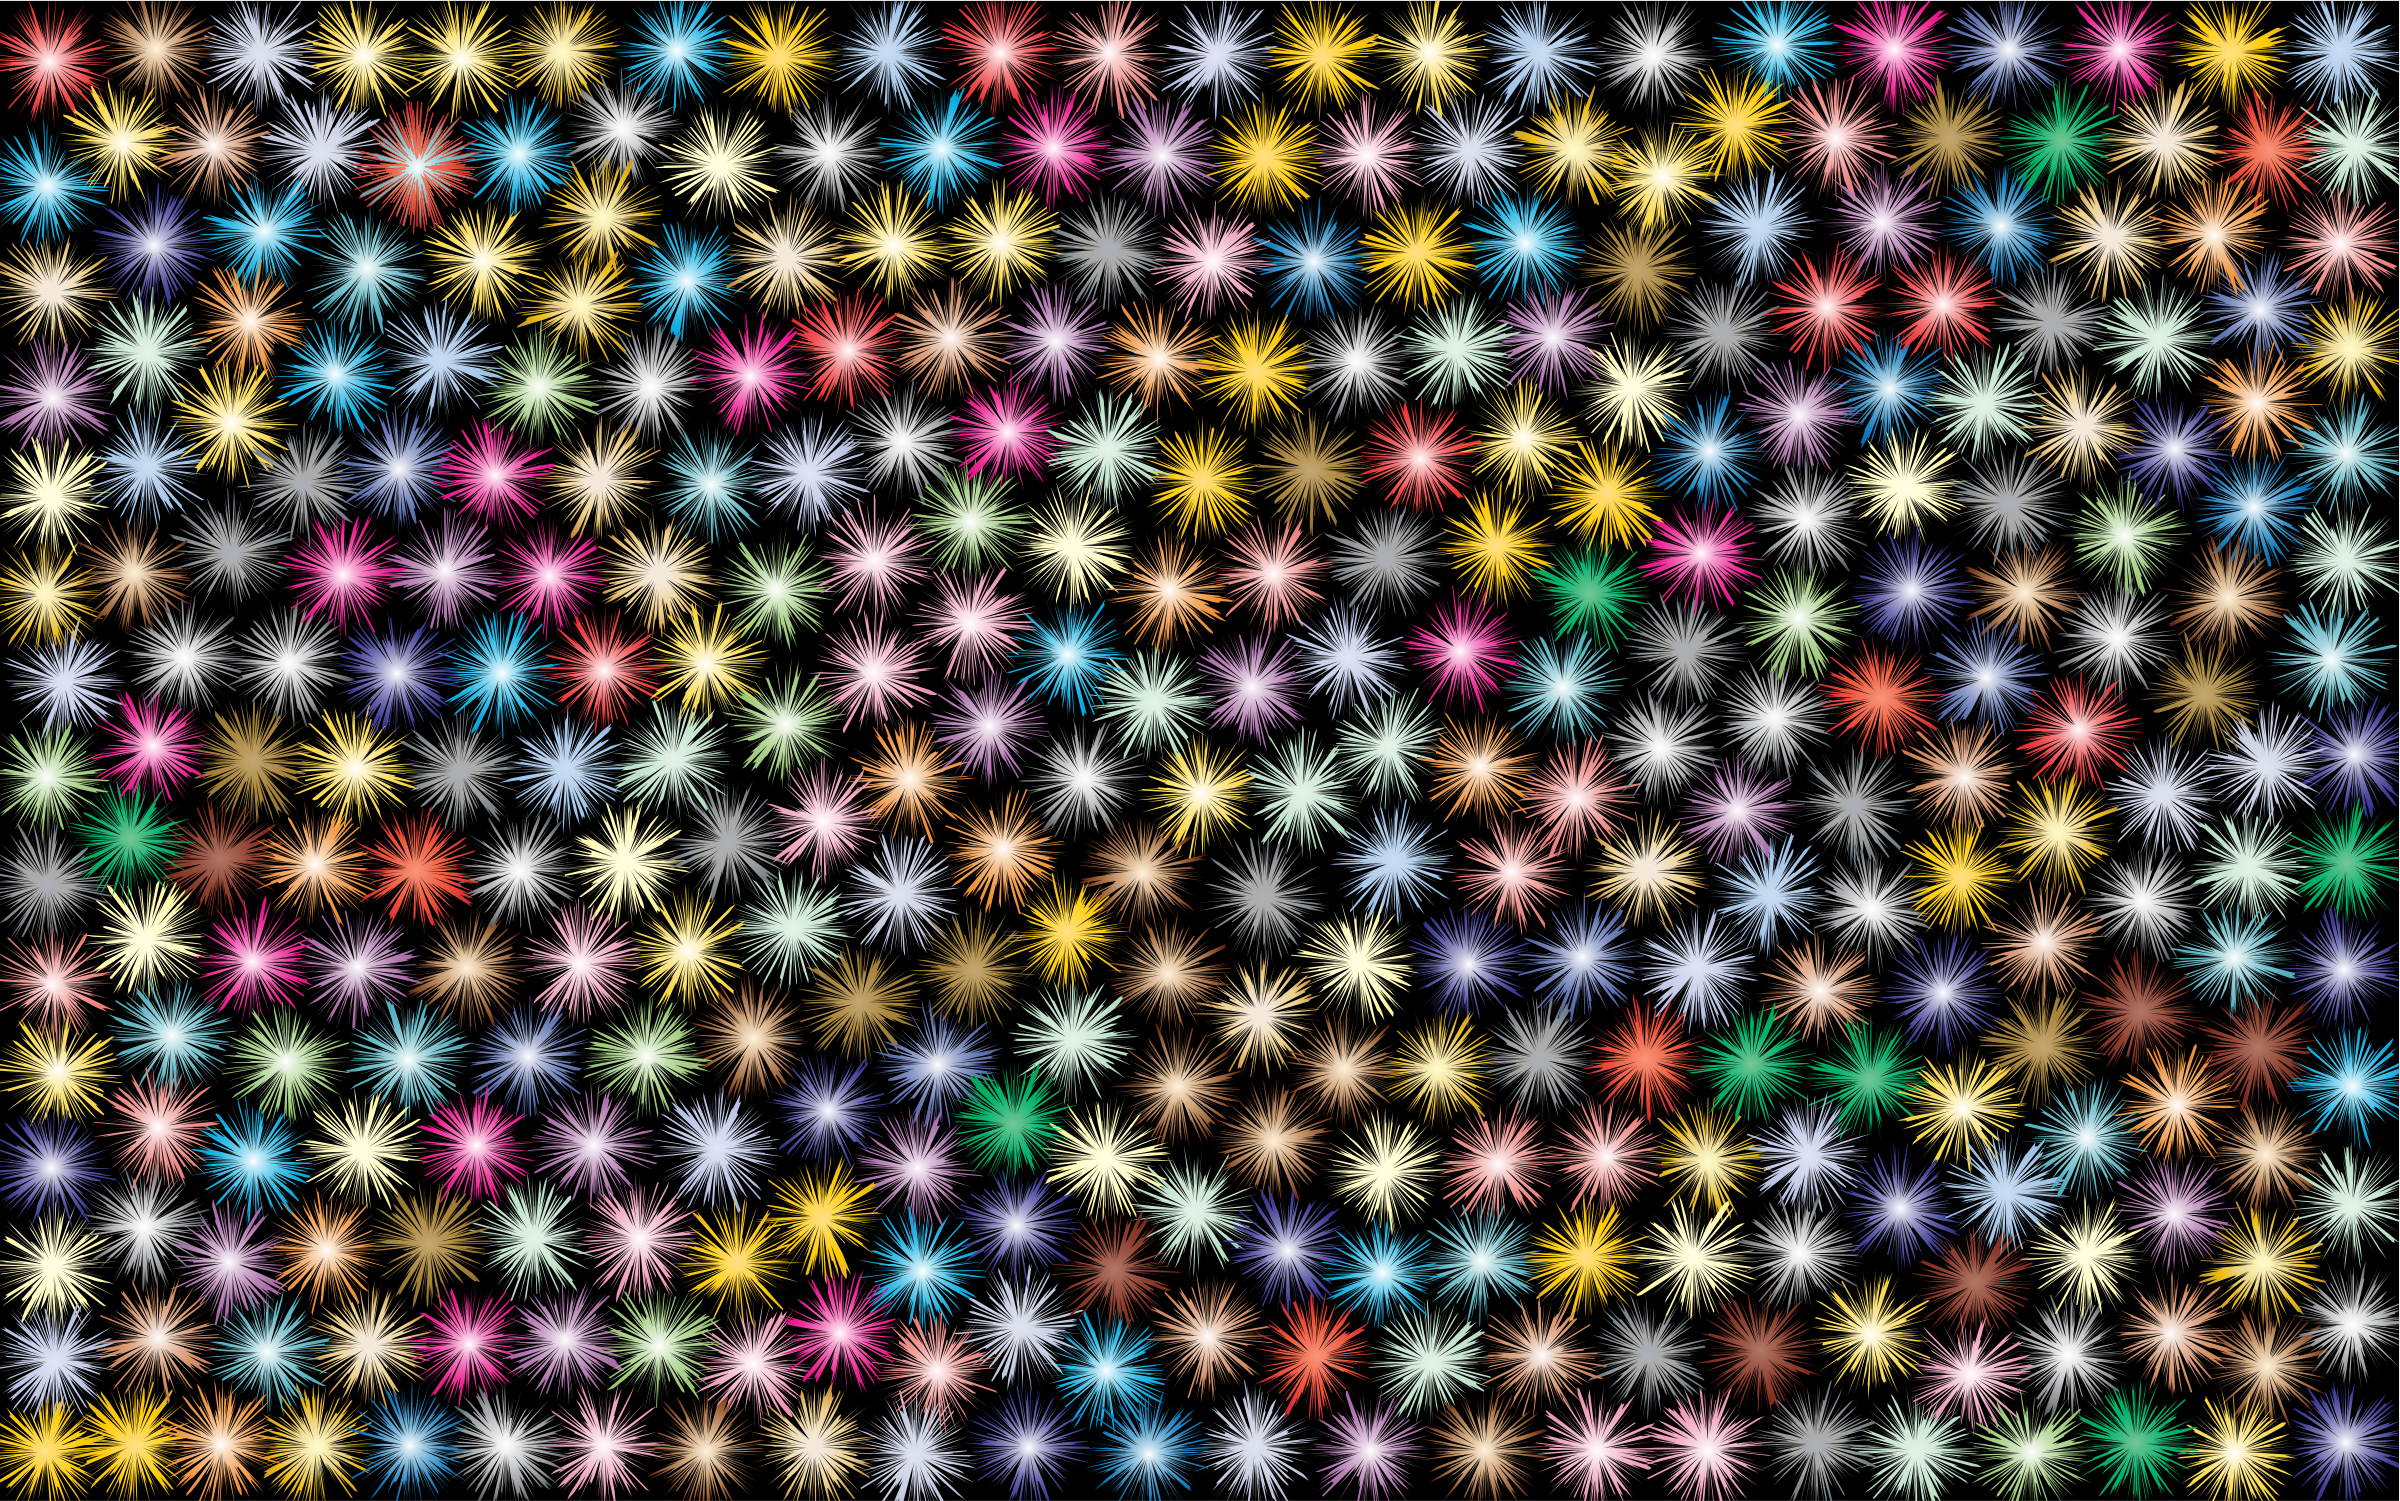 Prismatic Fuzzy Background 2 by GDJ